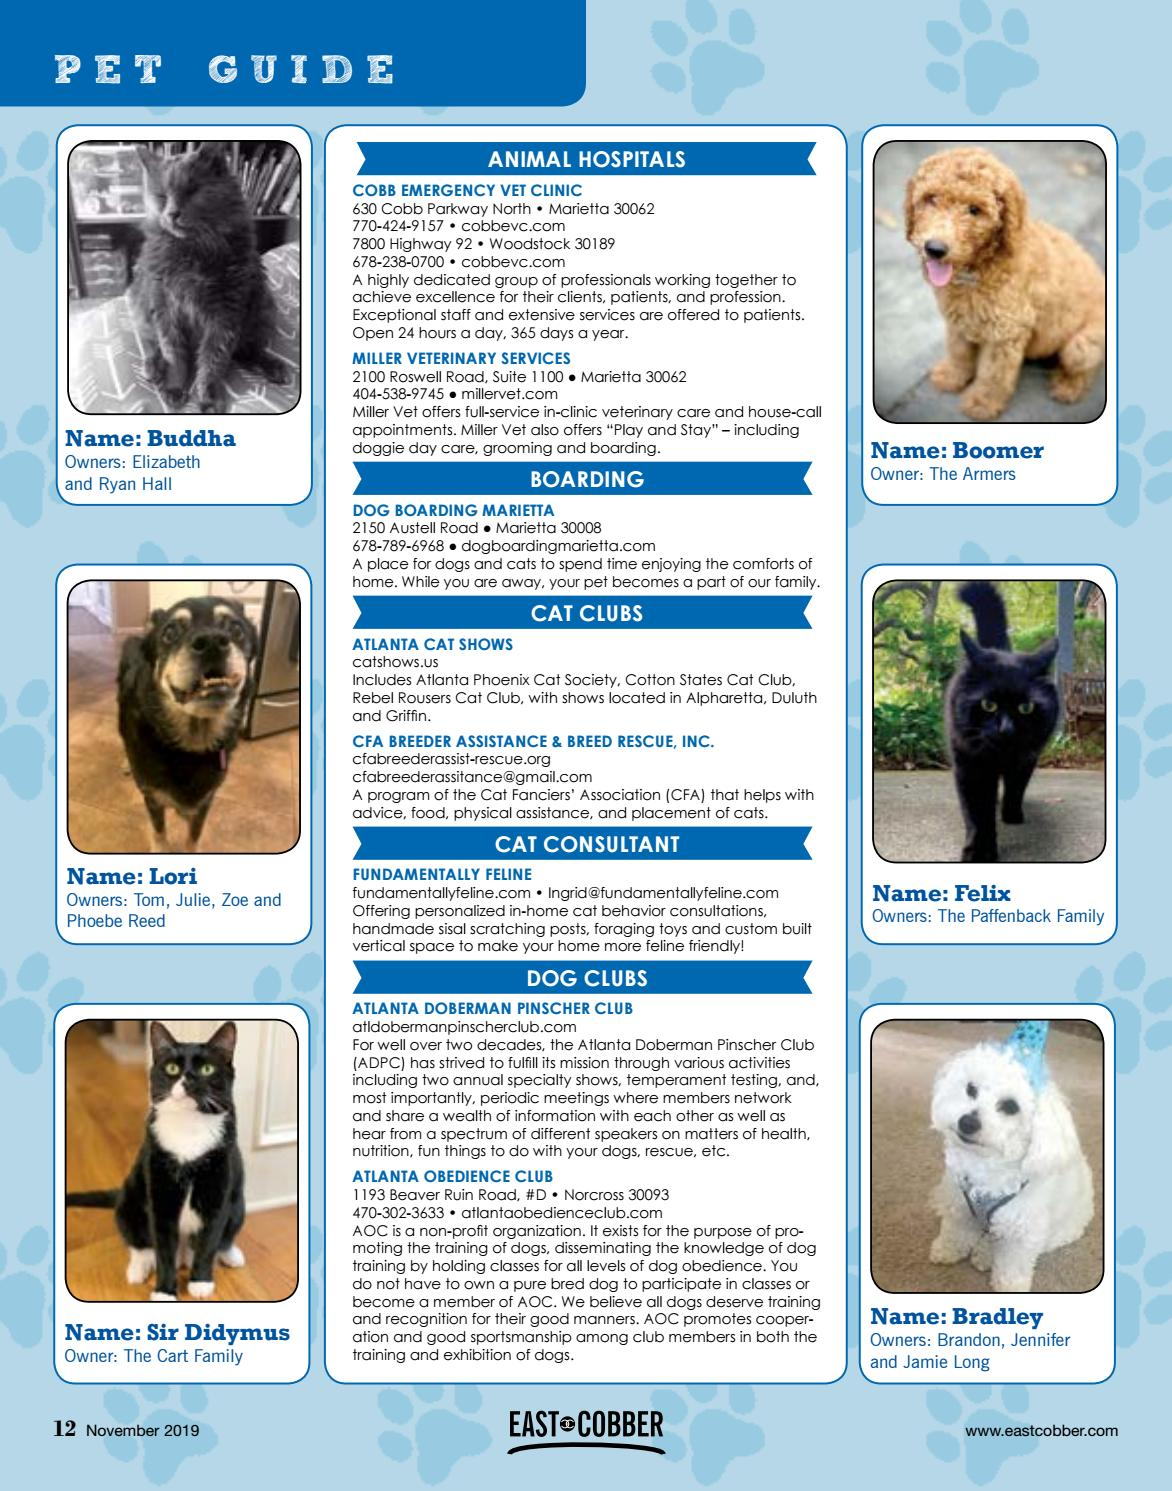 2019 East Cobber Pet Guide By East Cobber Magazine Issuu